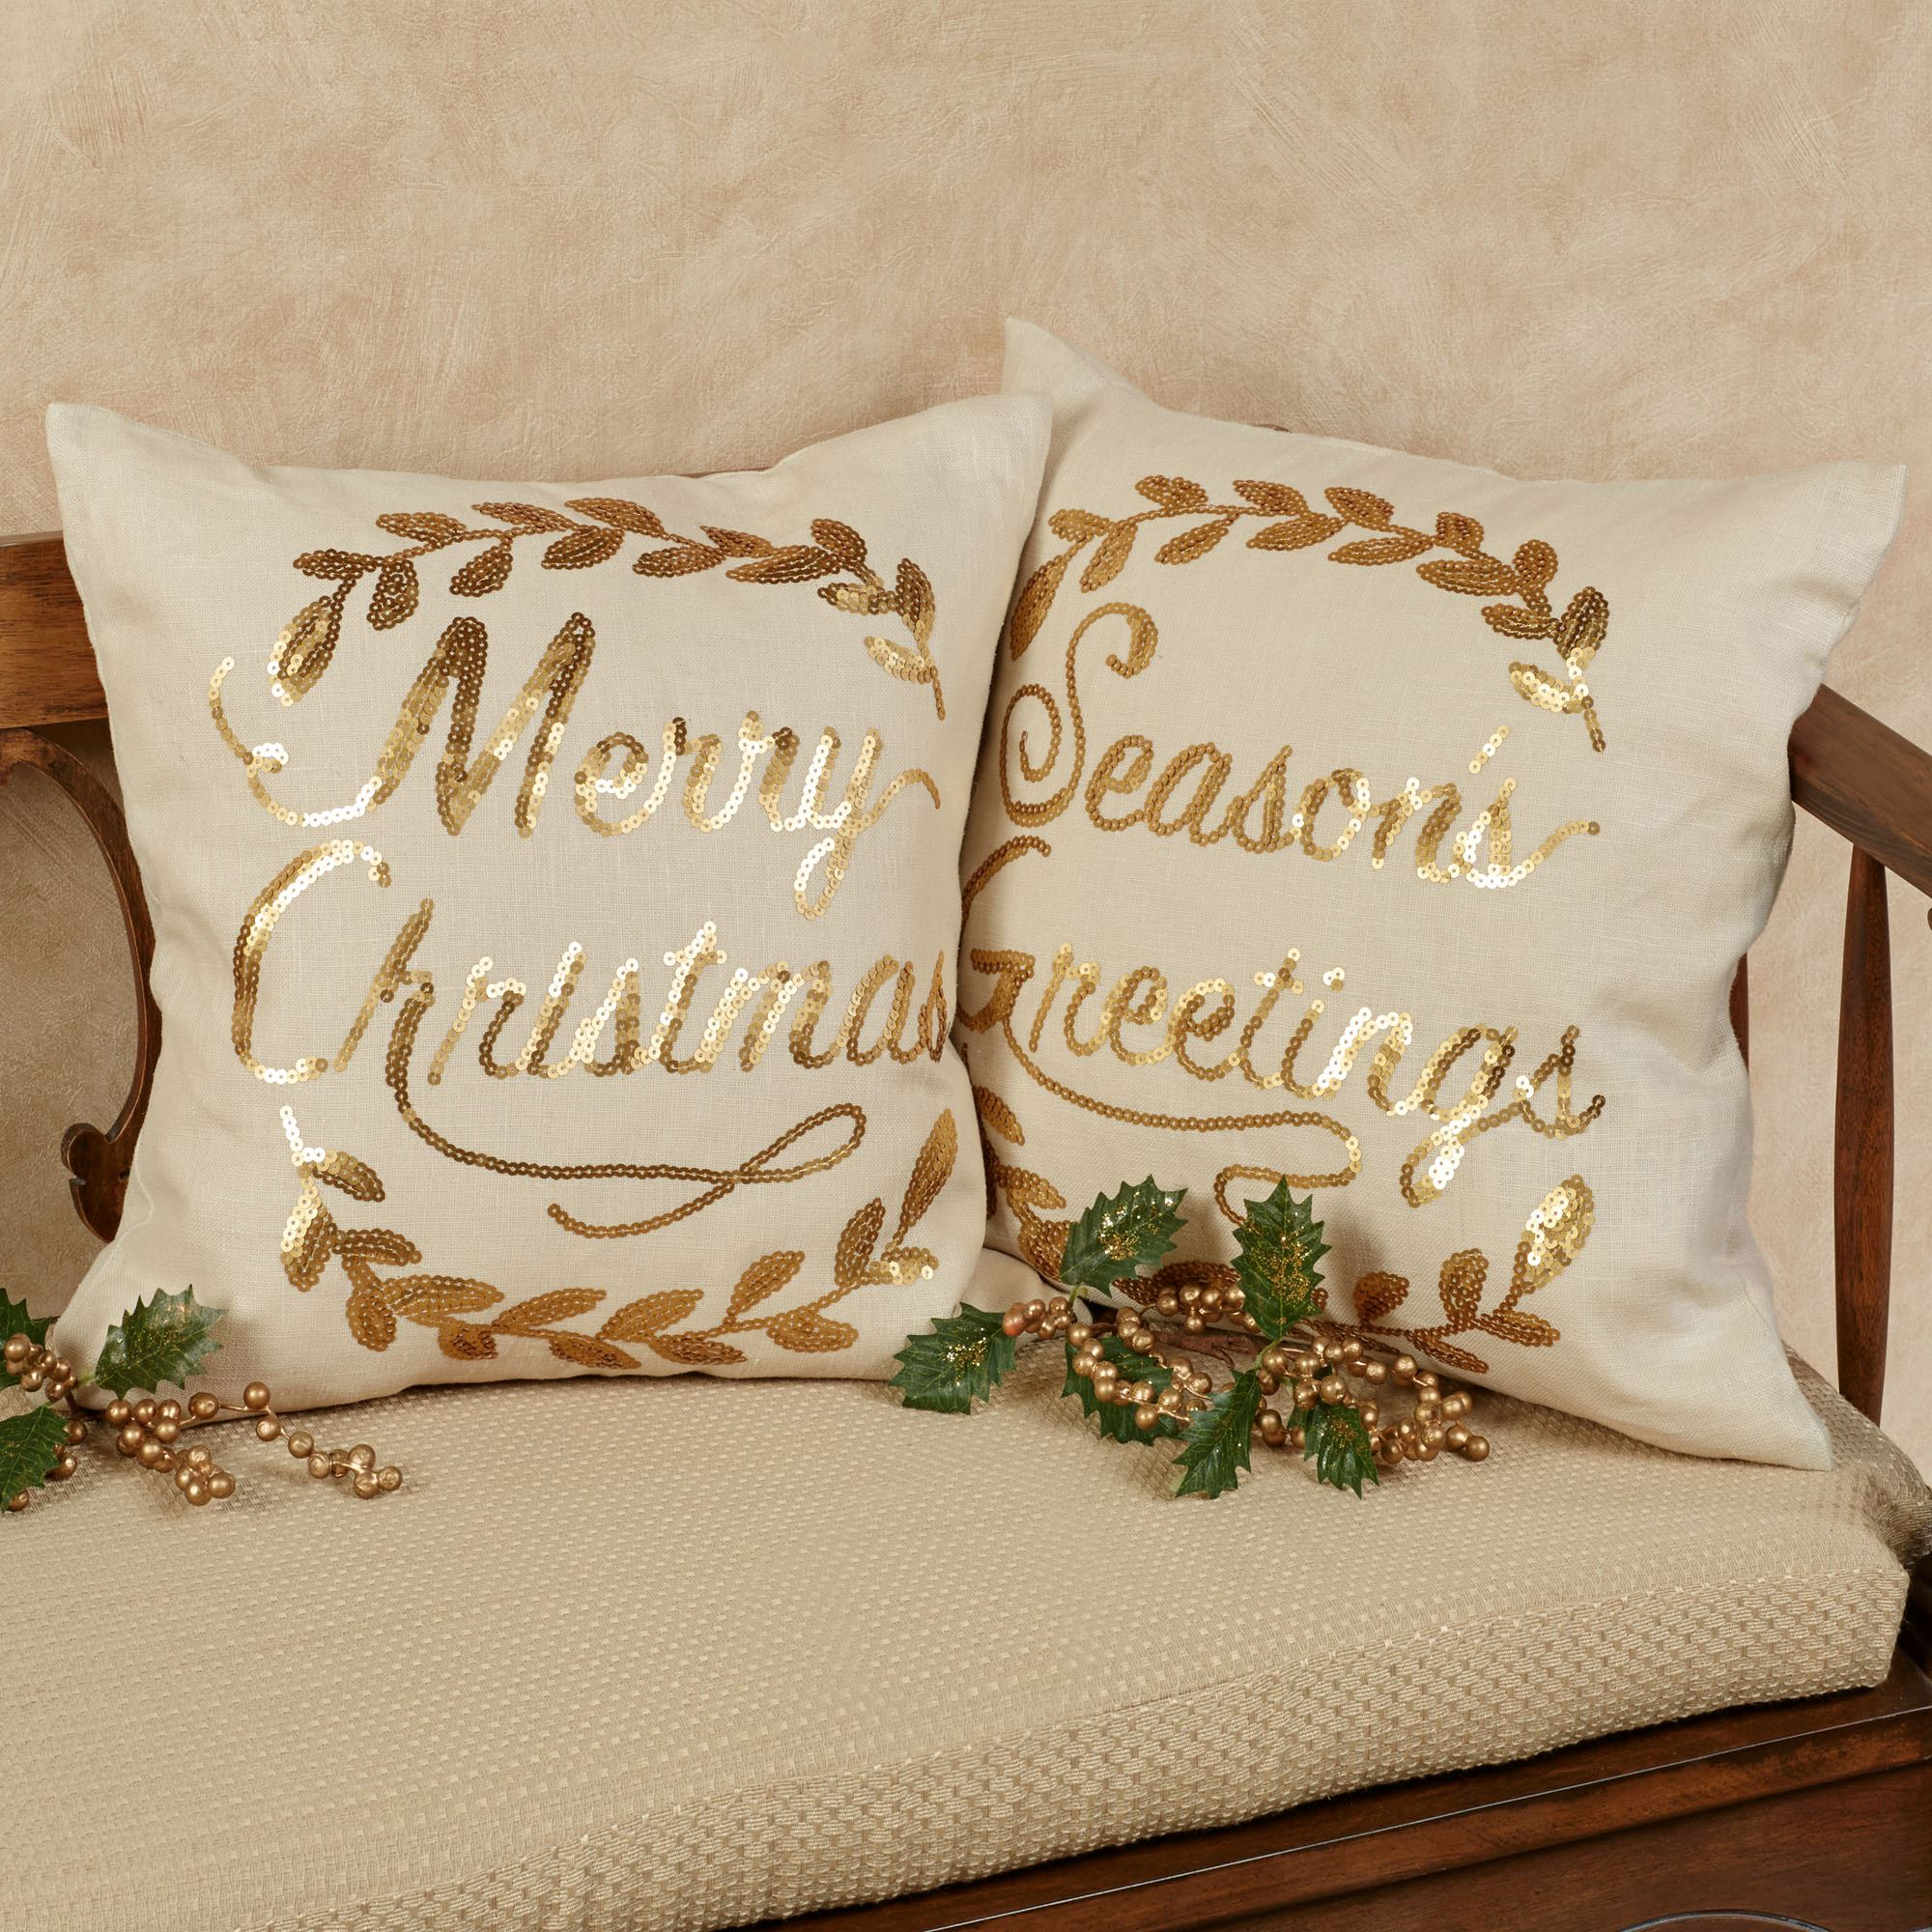 merry christmas wreath accent pillow light cream 16 square touch to zoom